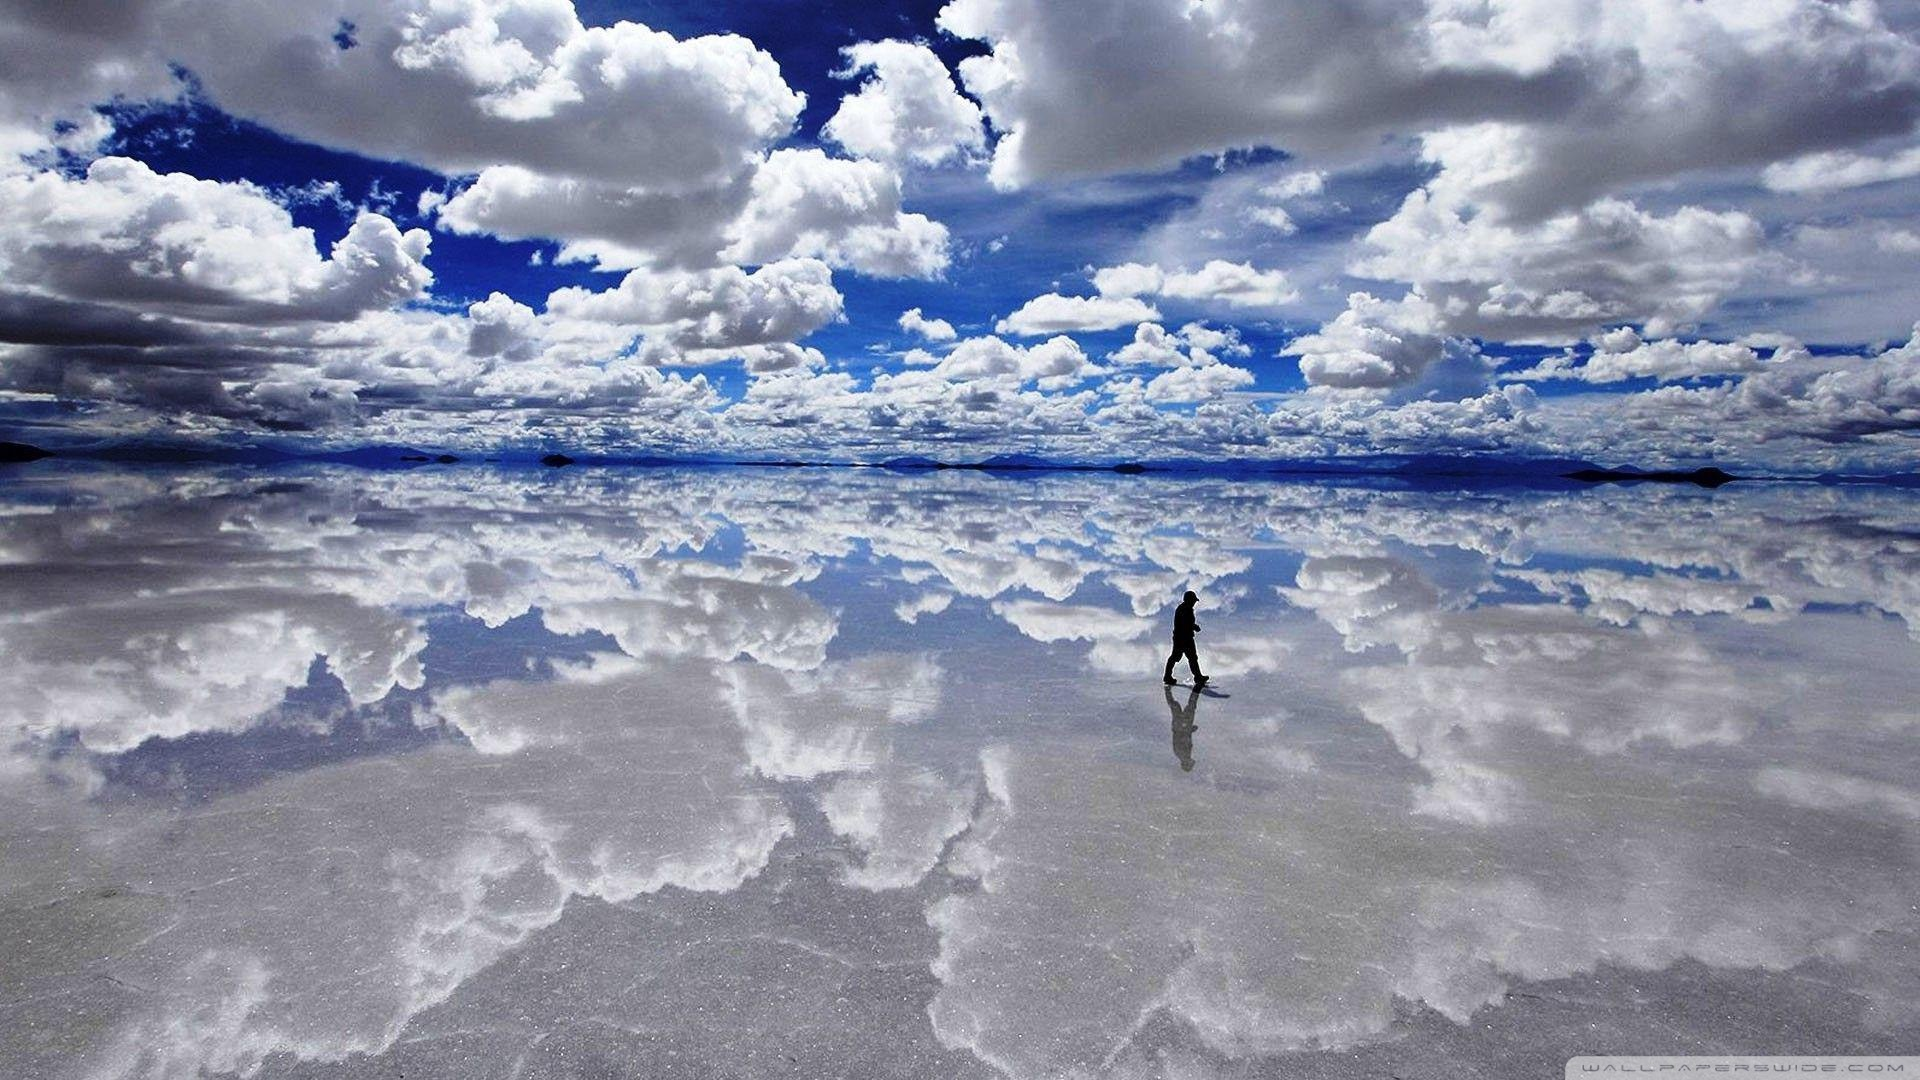 Salar de Uyuni Bolivia 4K HD Desktop Wallpaper for 4K Ultra HD 1920x1080